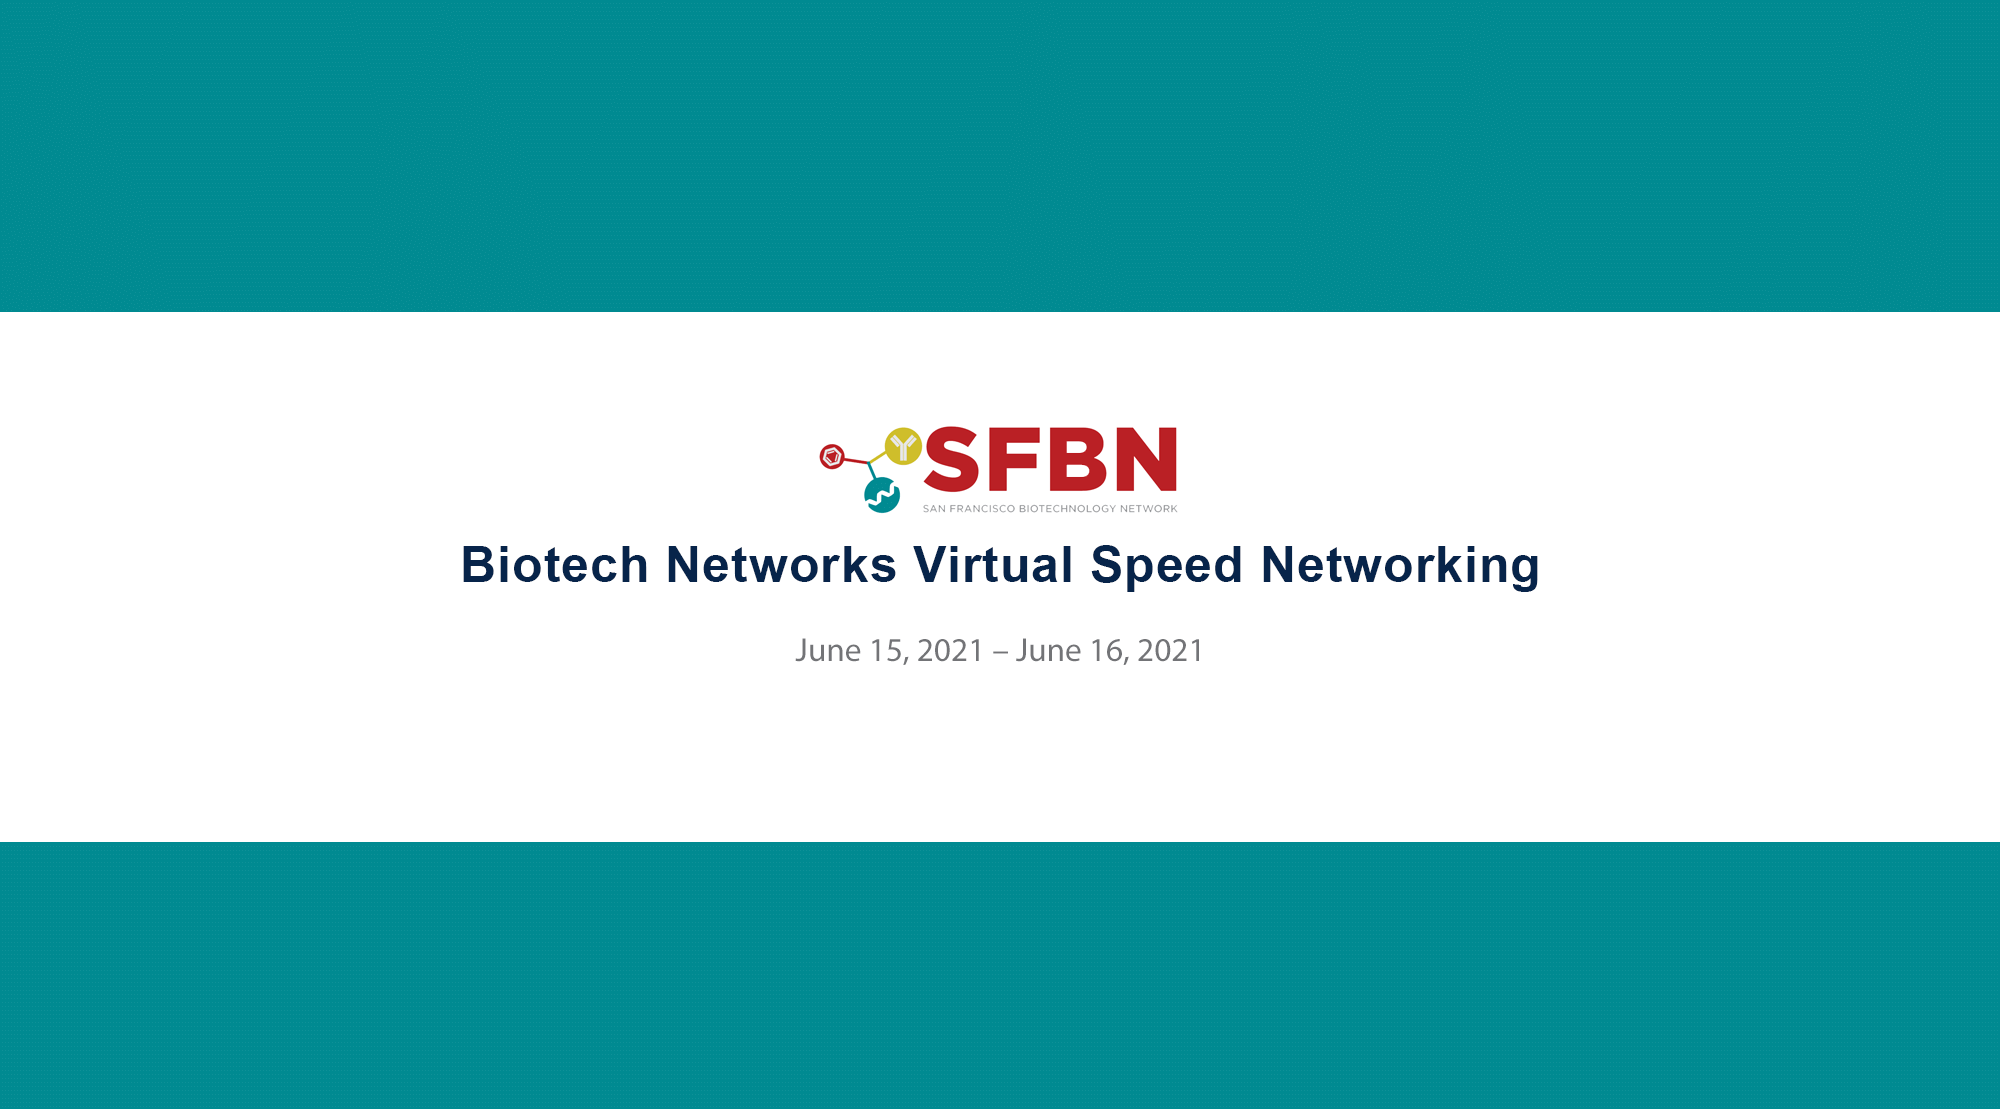 Biotech Networks Virtual Speed Networking